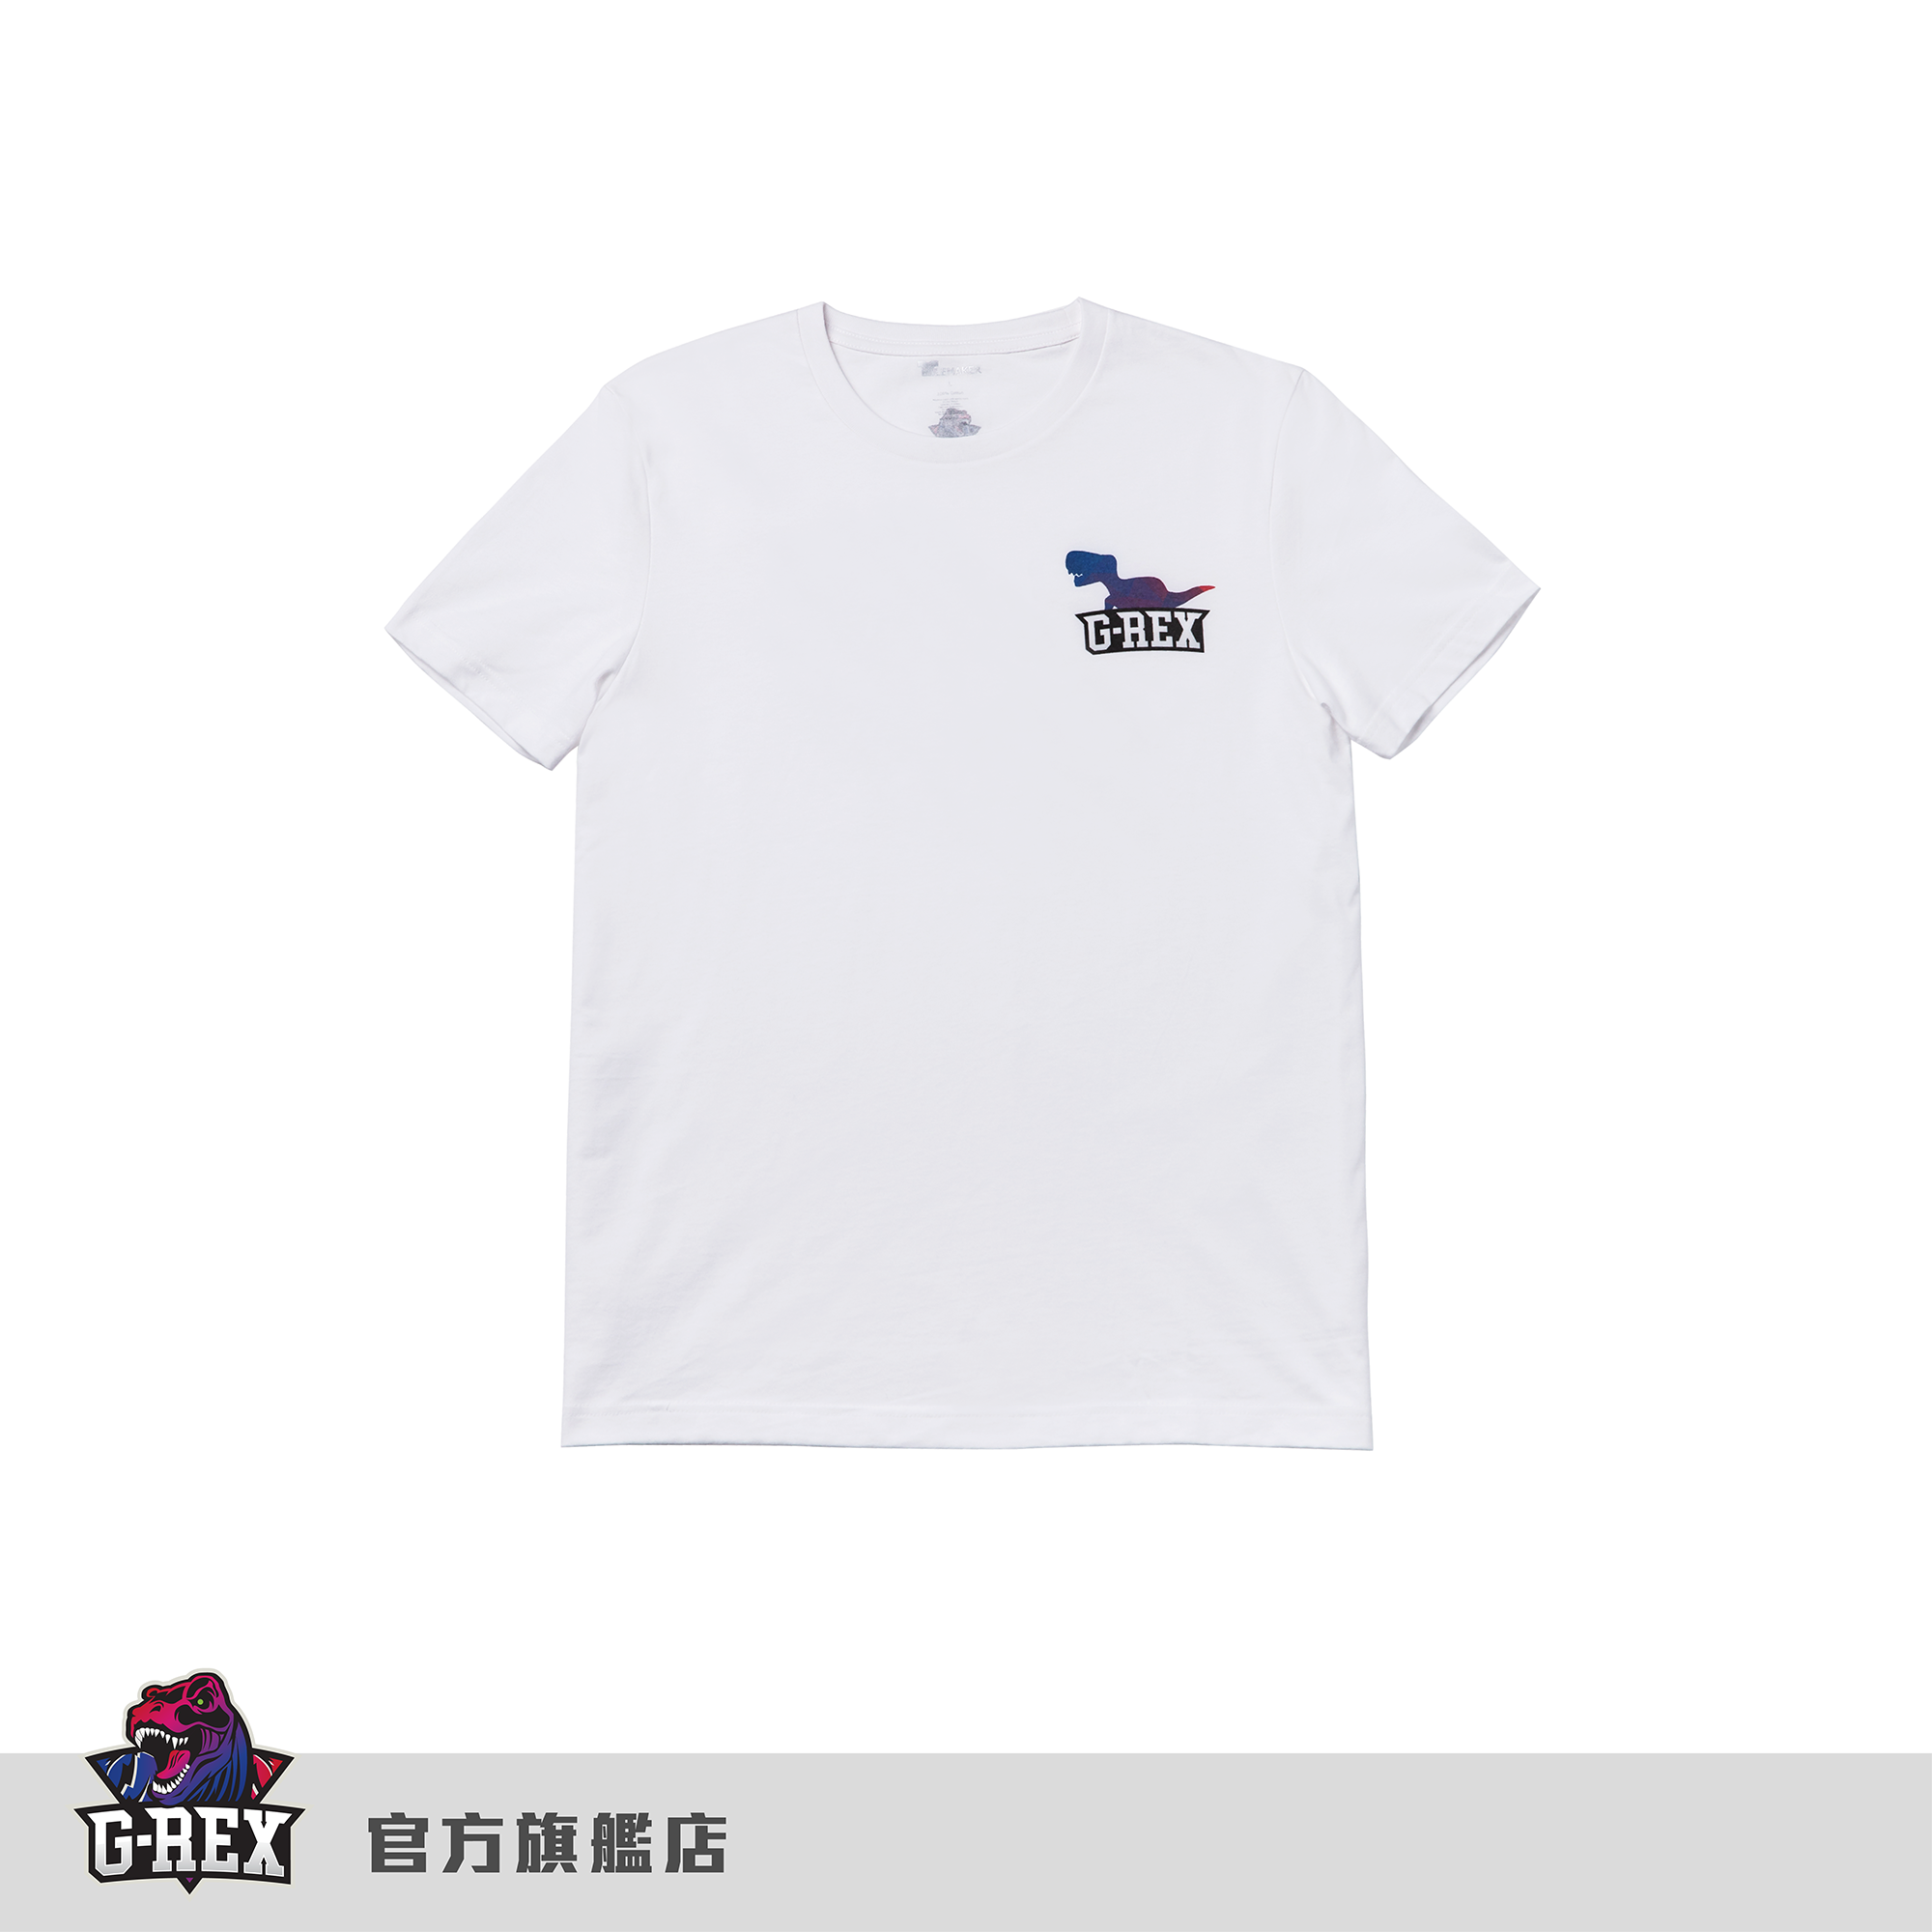 shopee_product_0603-05.png